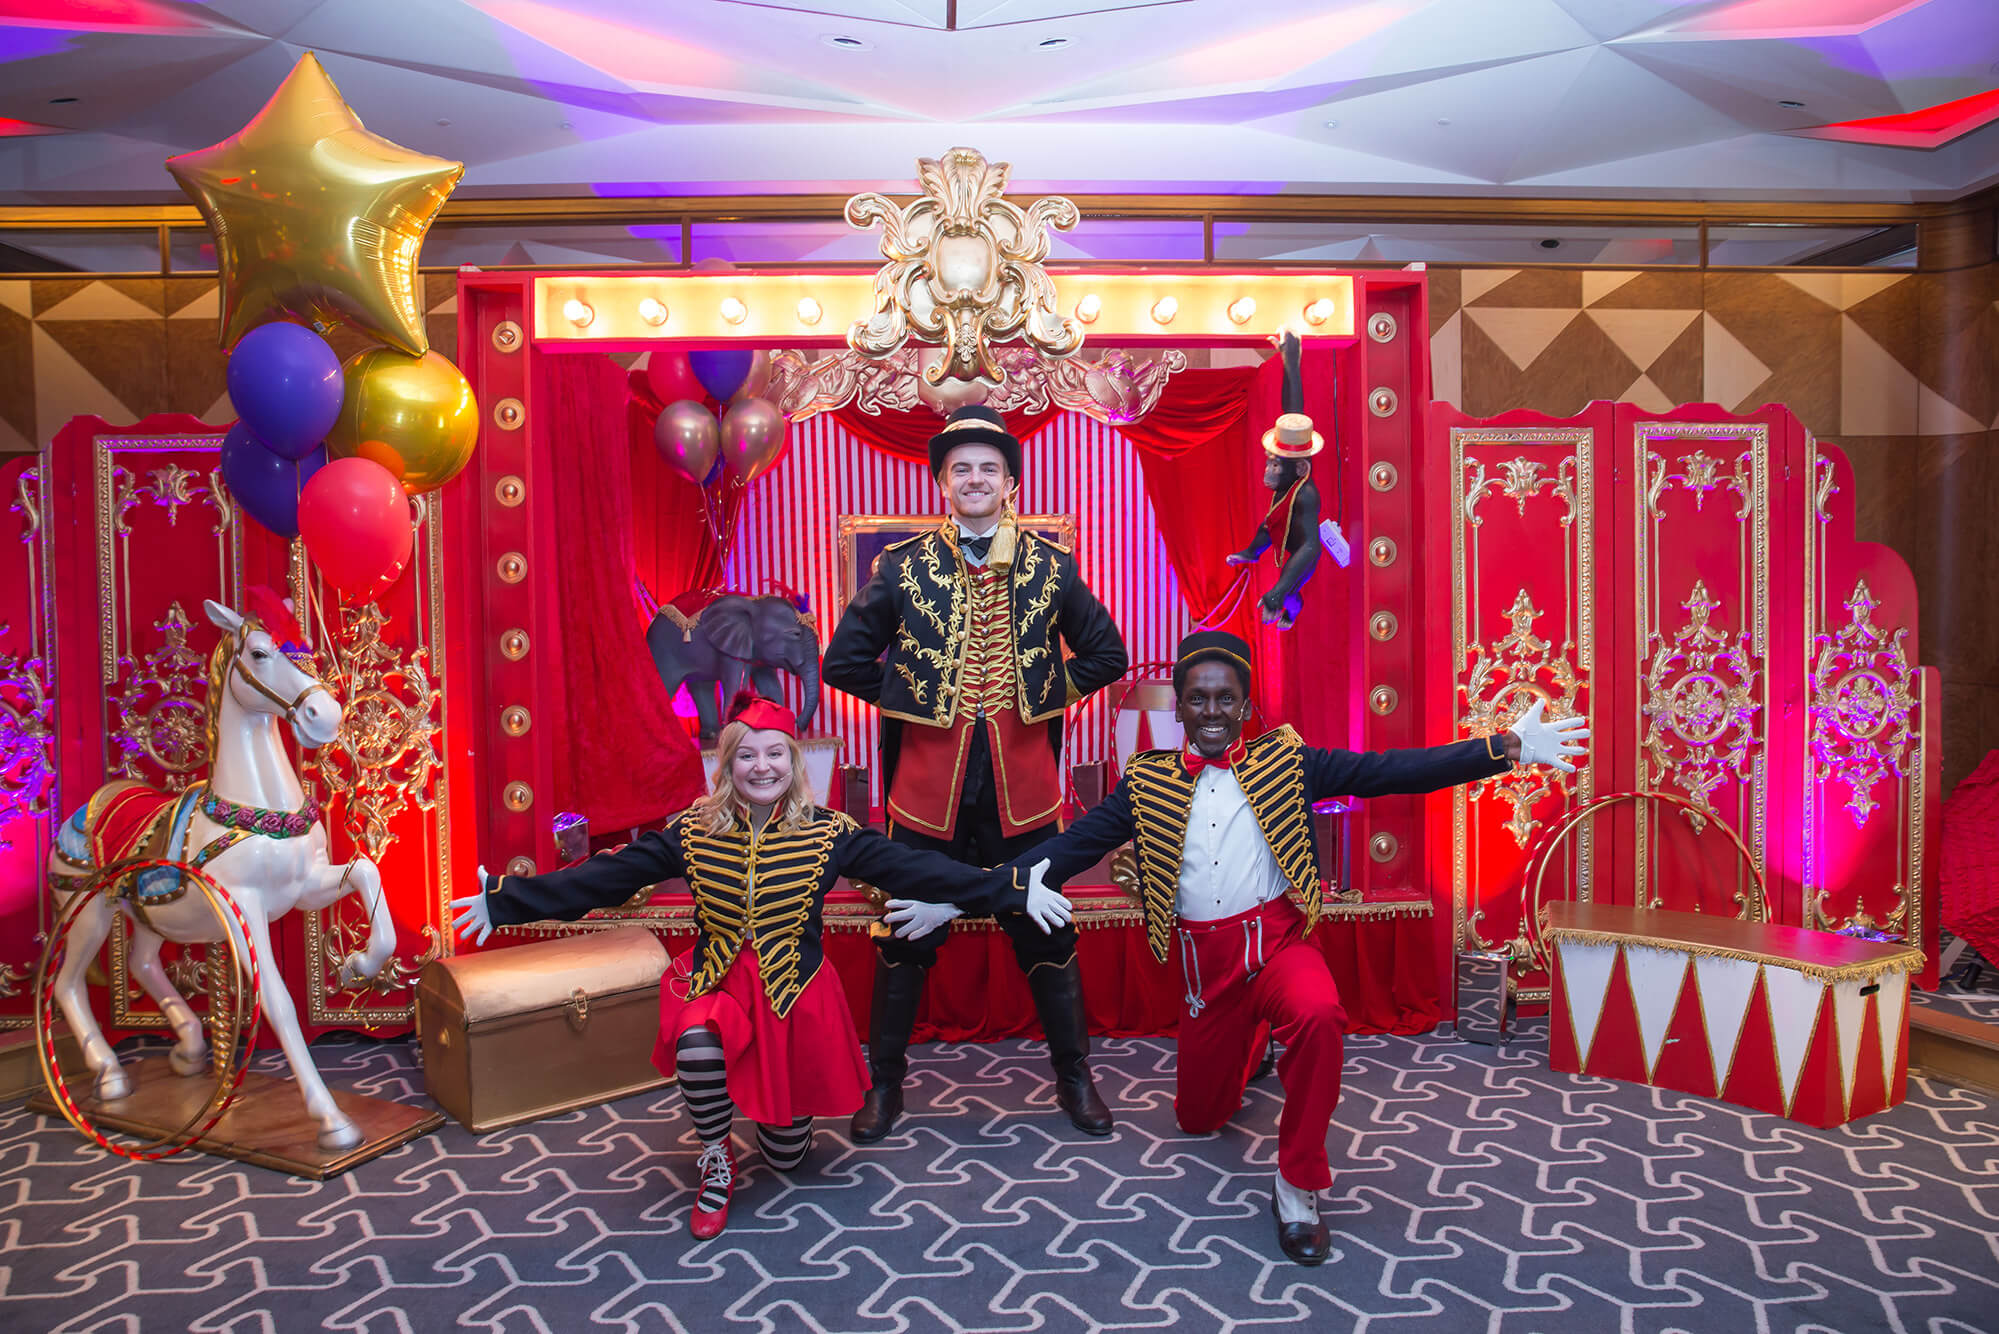 Bespoke Childrens Parties | Dazzle & Fizz Events